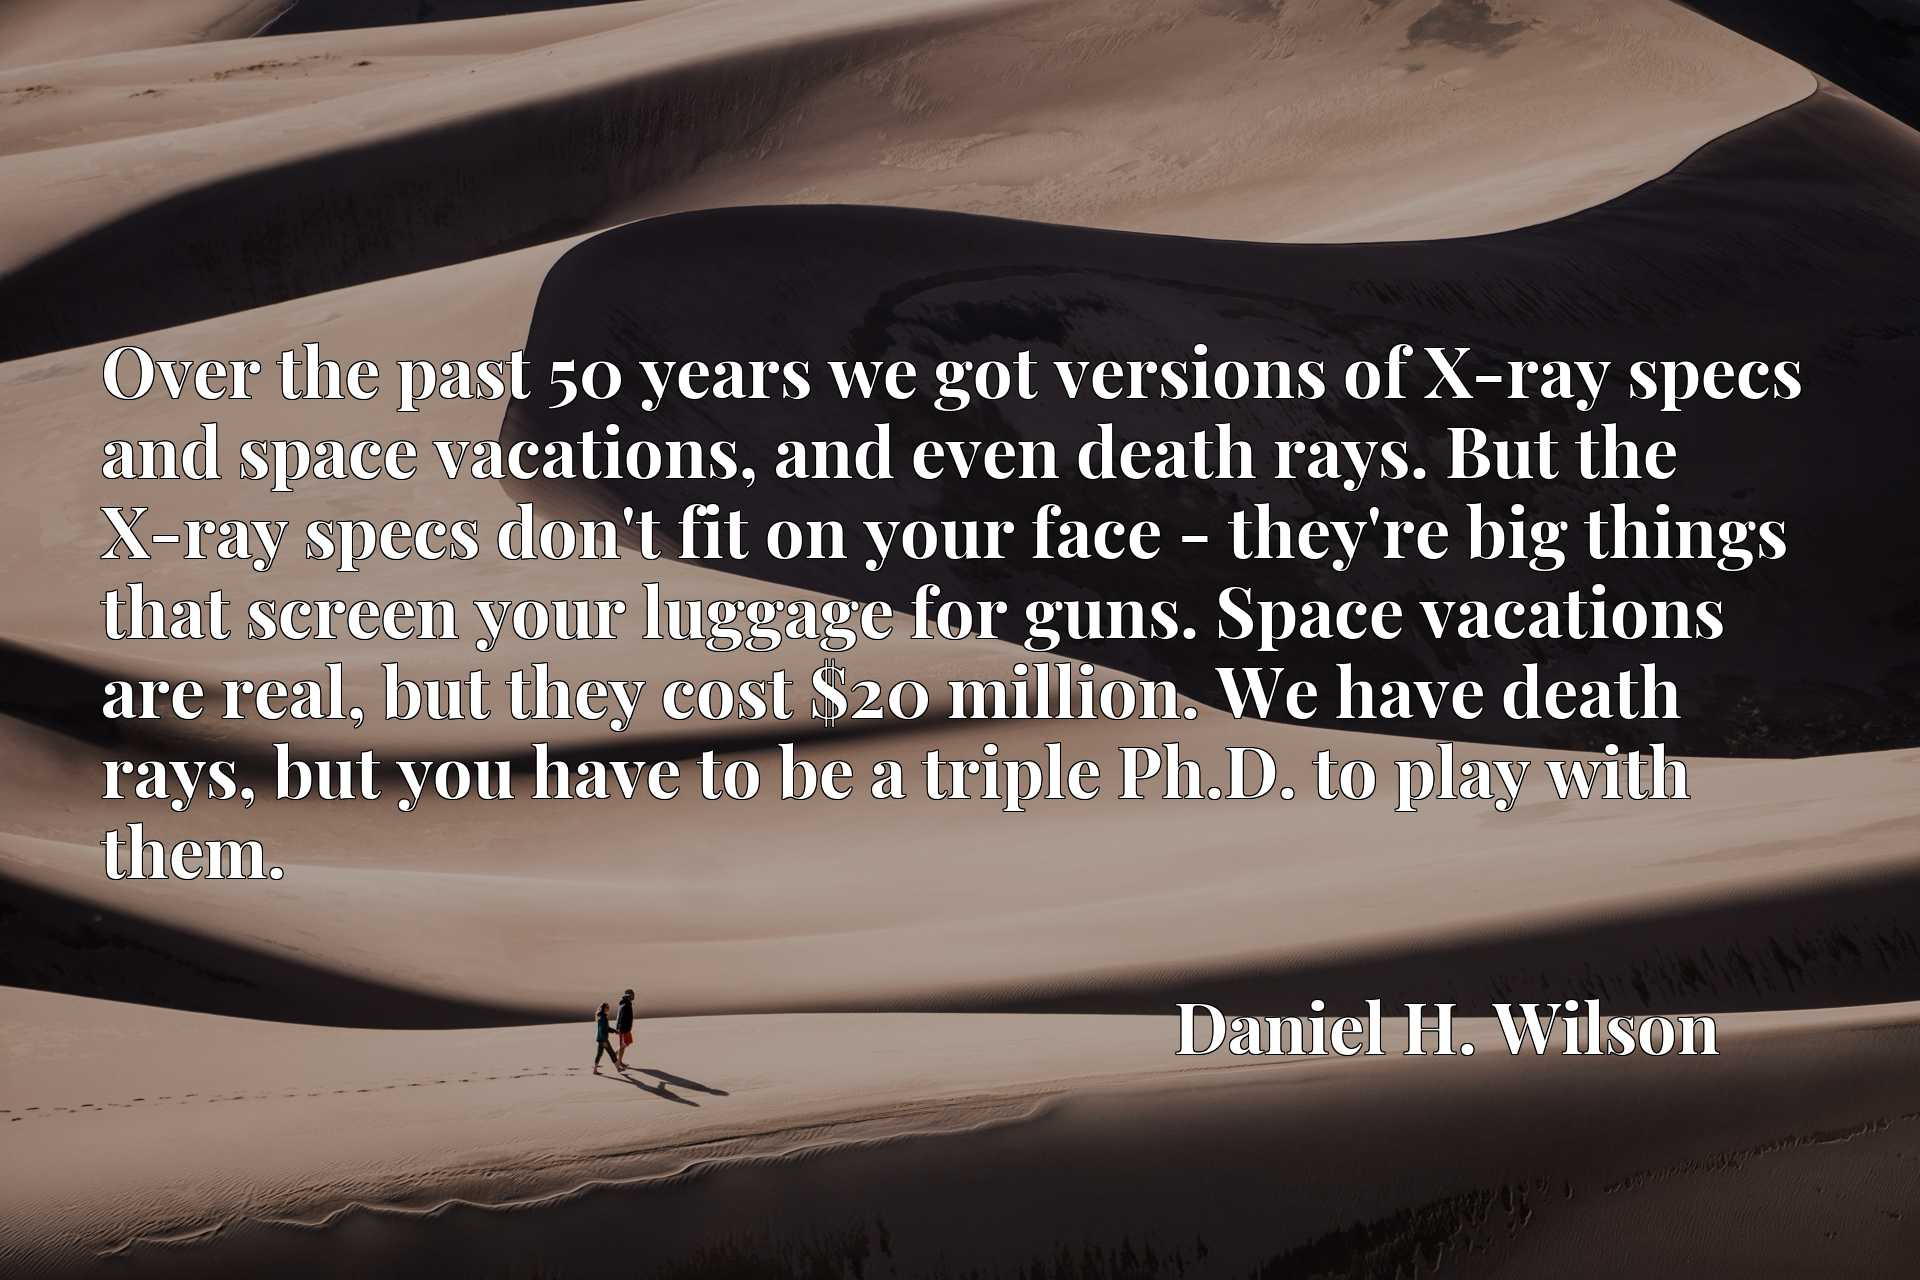 Over the past 50 years we got versions of X-ray specs and space vacations, and even death rays. But the X-ray specs don't fit on your face - they're big things that screen your luggage for guns. Space vacations are real, but they cost $20 million. We have death rays, but you have to be a triple Ph.D. to play with them.